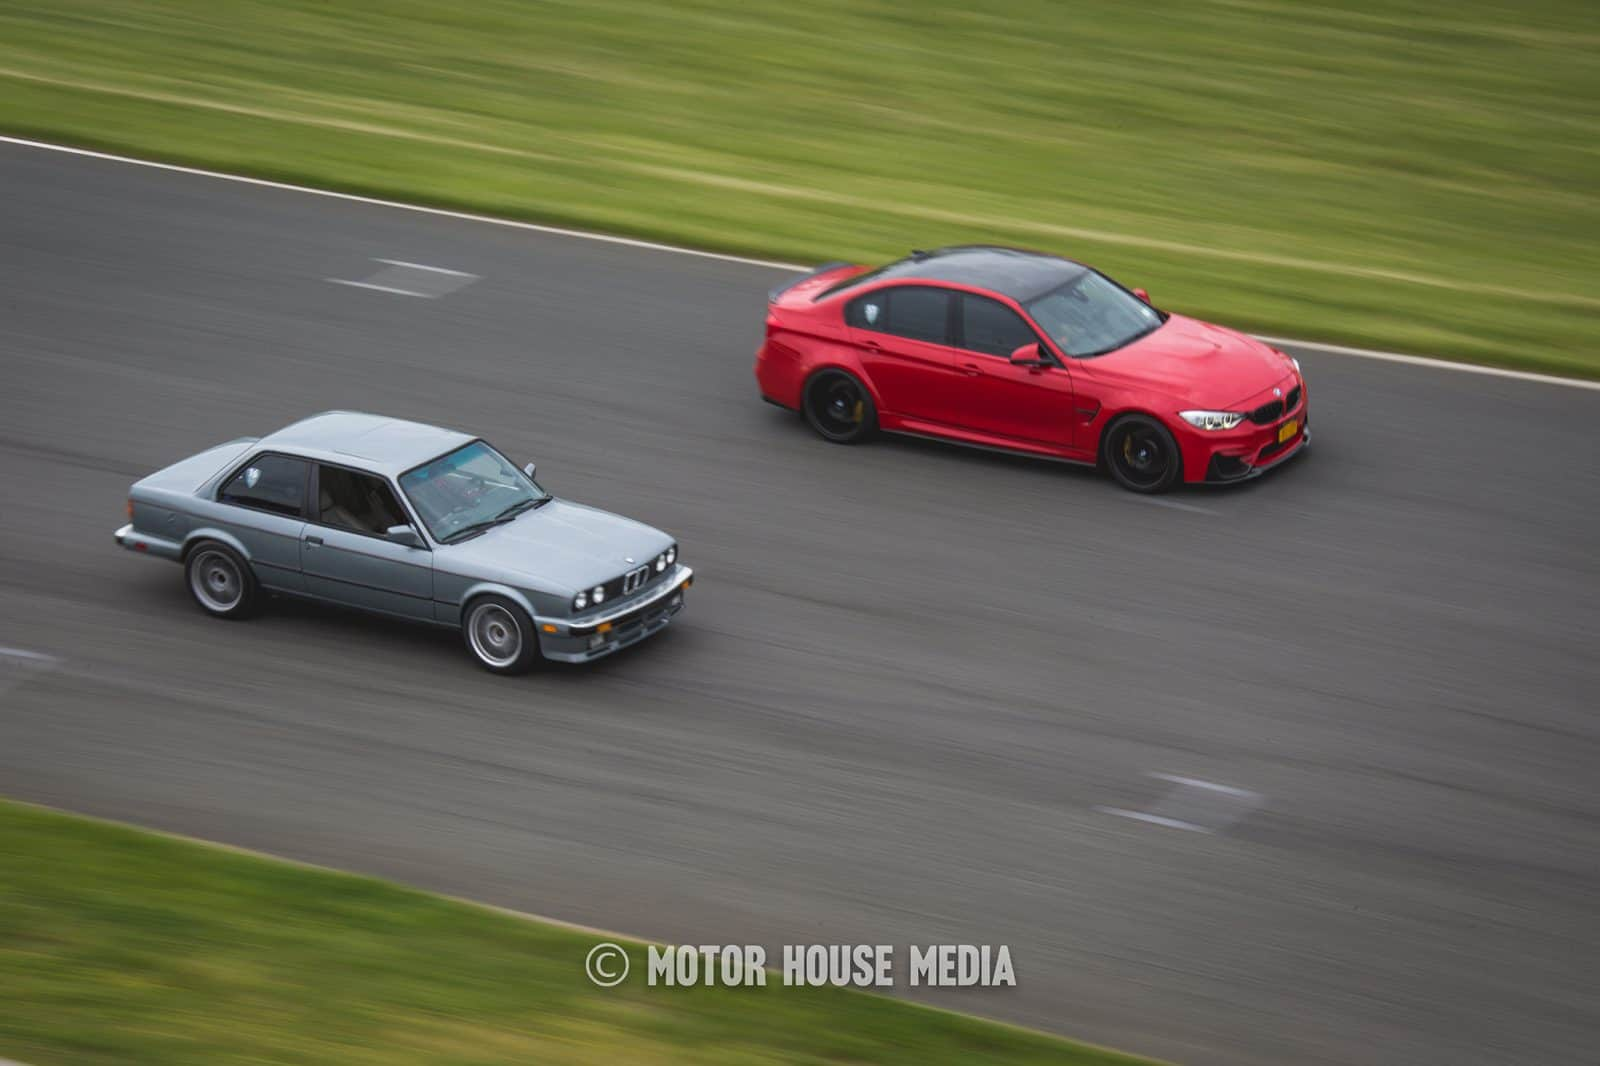 BMW's Roll Racing at NJMP